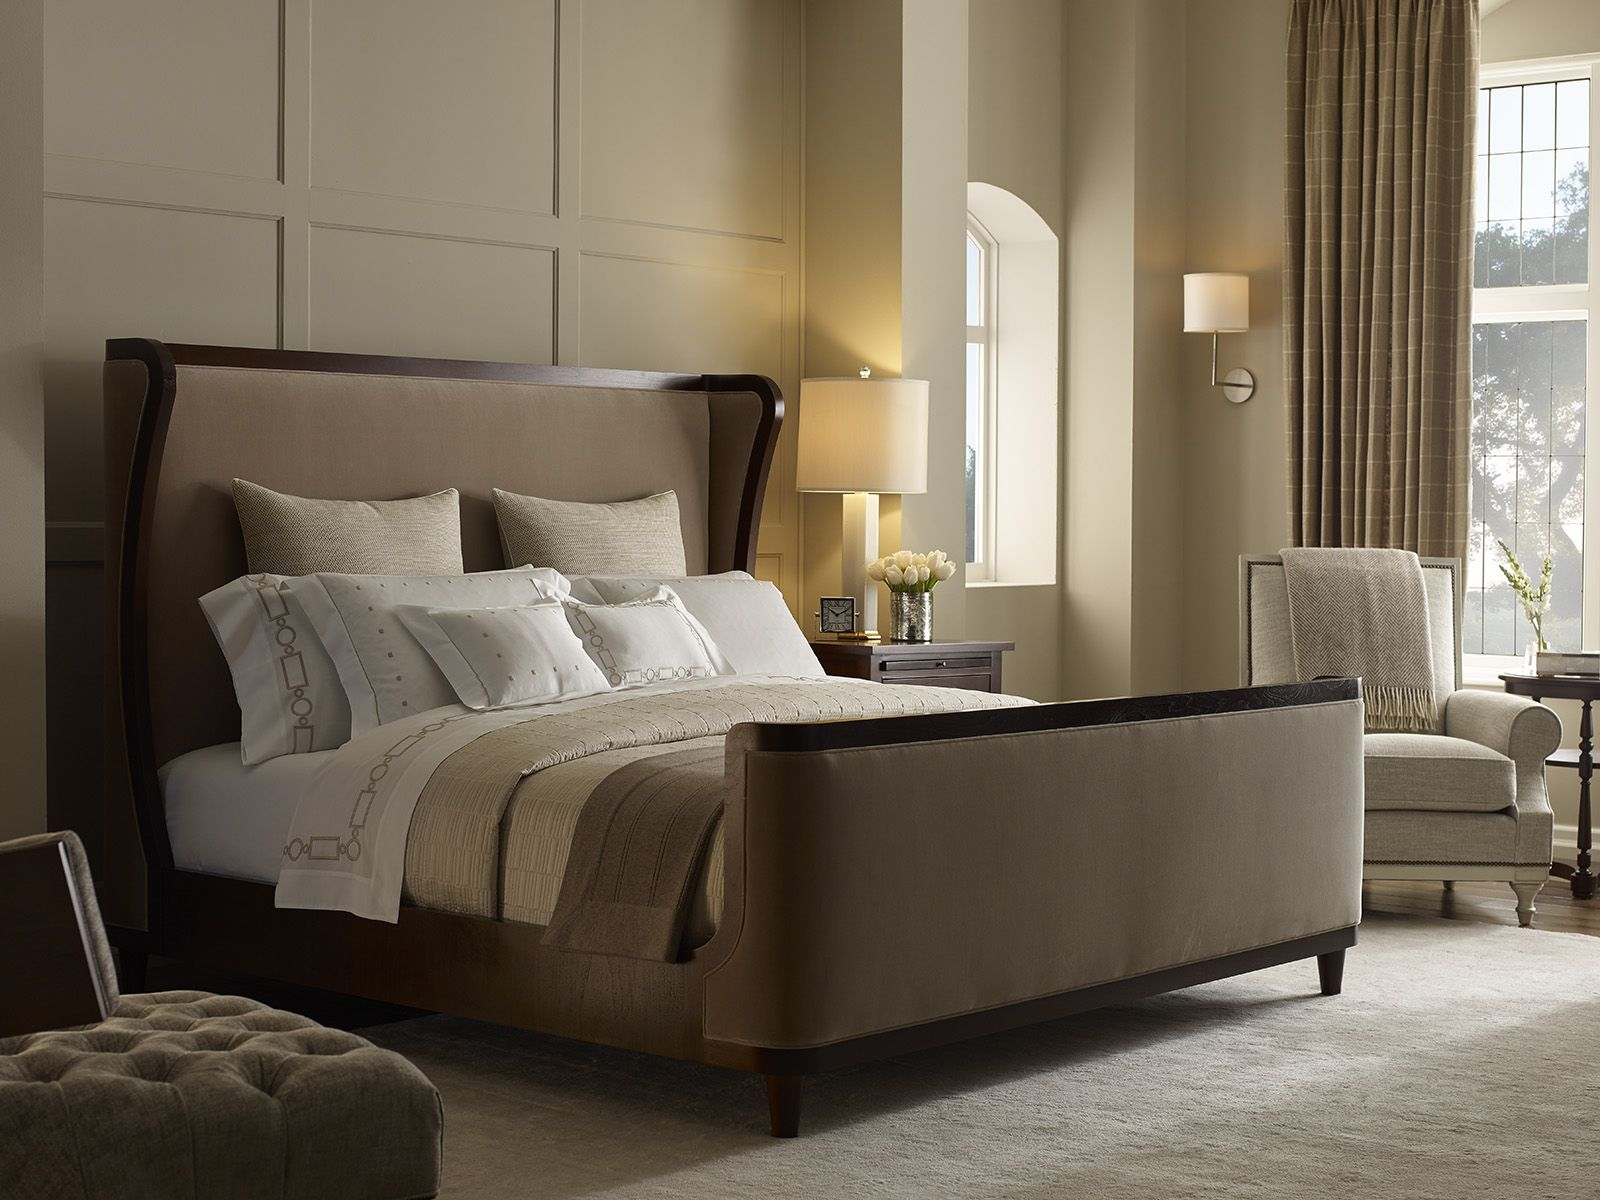 The Cliveden Upholstered Bed is calling. David Phoenix by